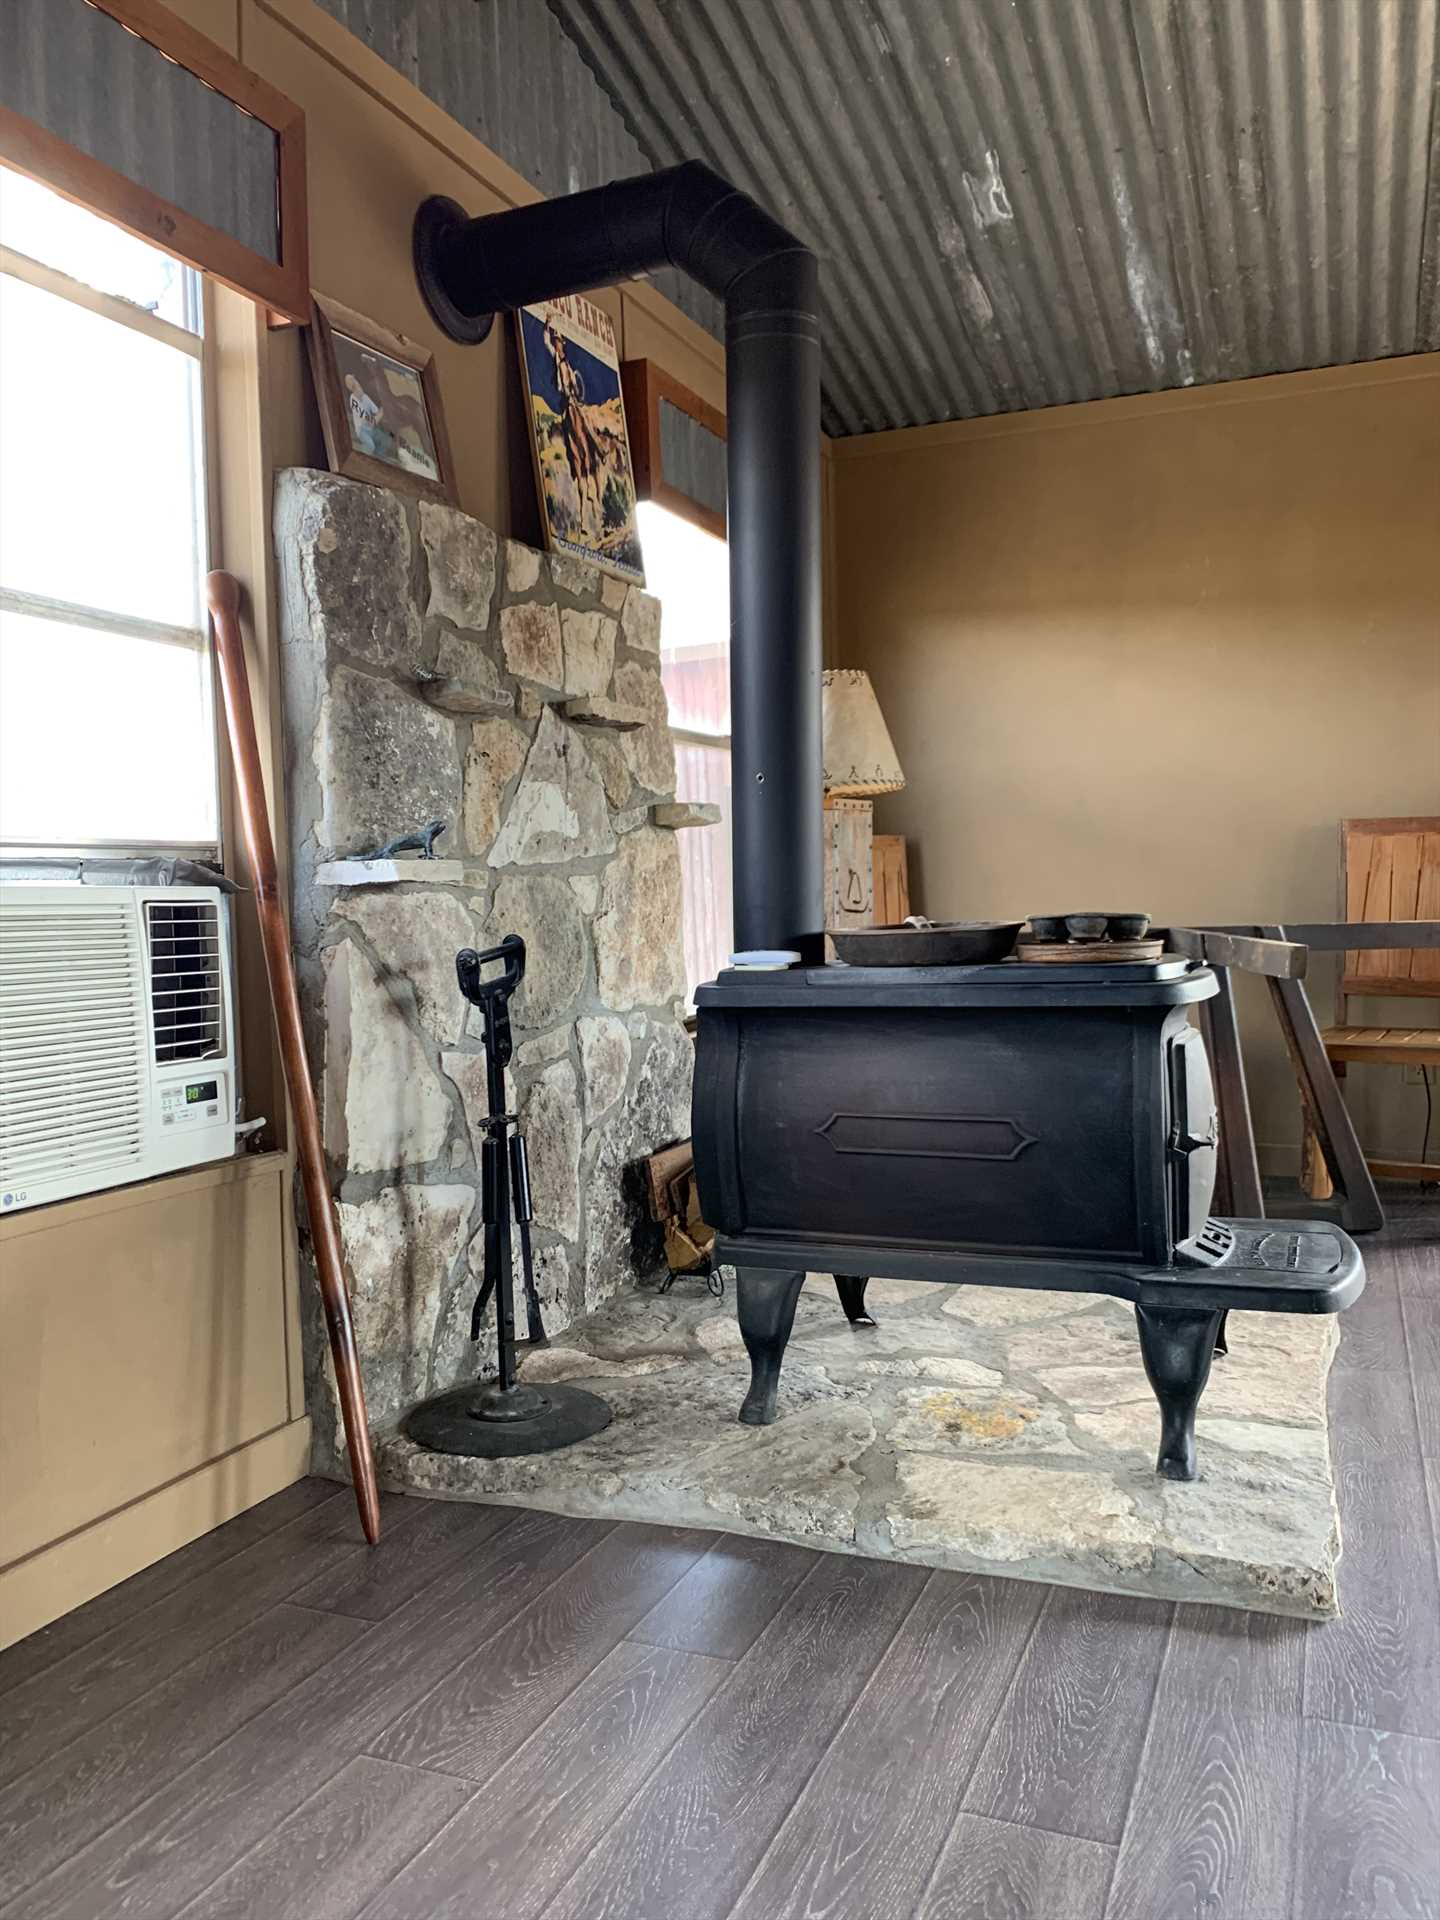 The interior of the pavilion has box AC for those hot Texas days, and there's also a functioning vintage wood-burning stove.